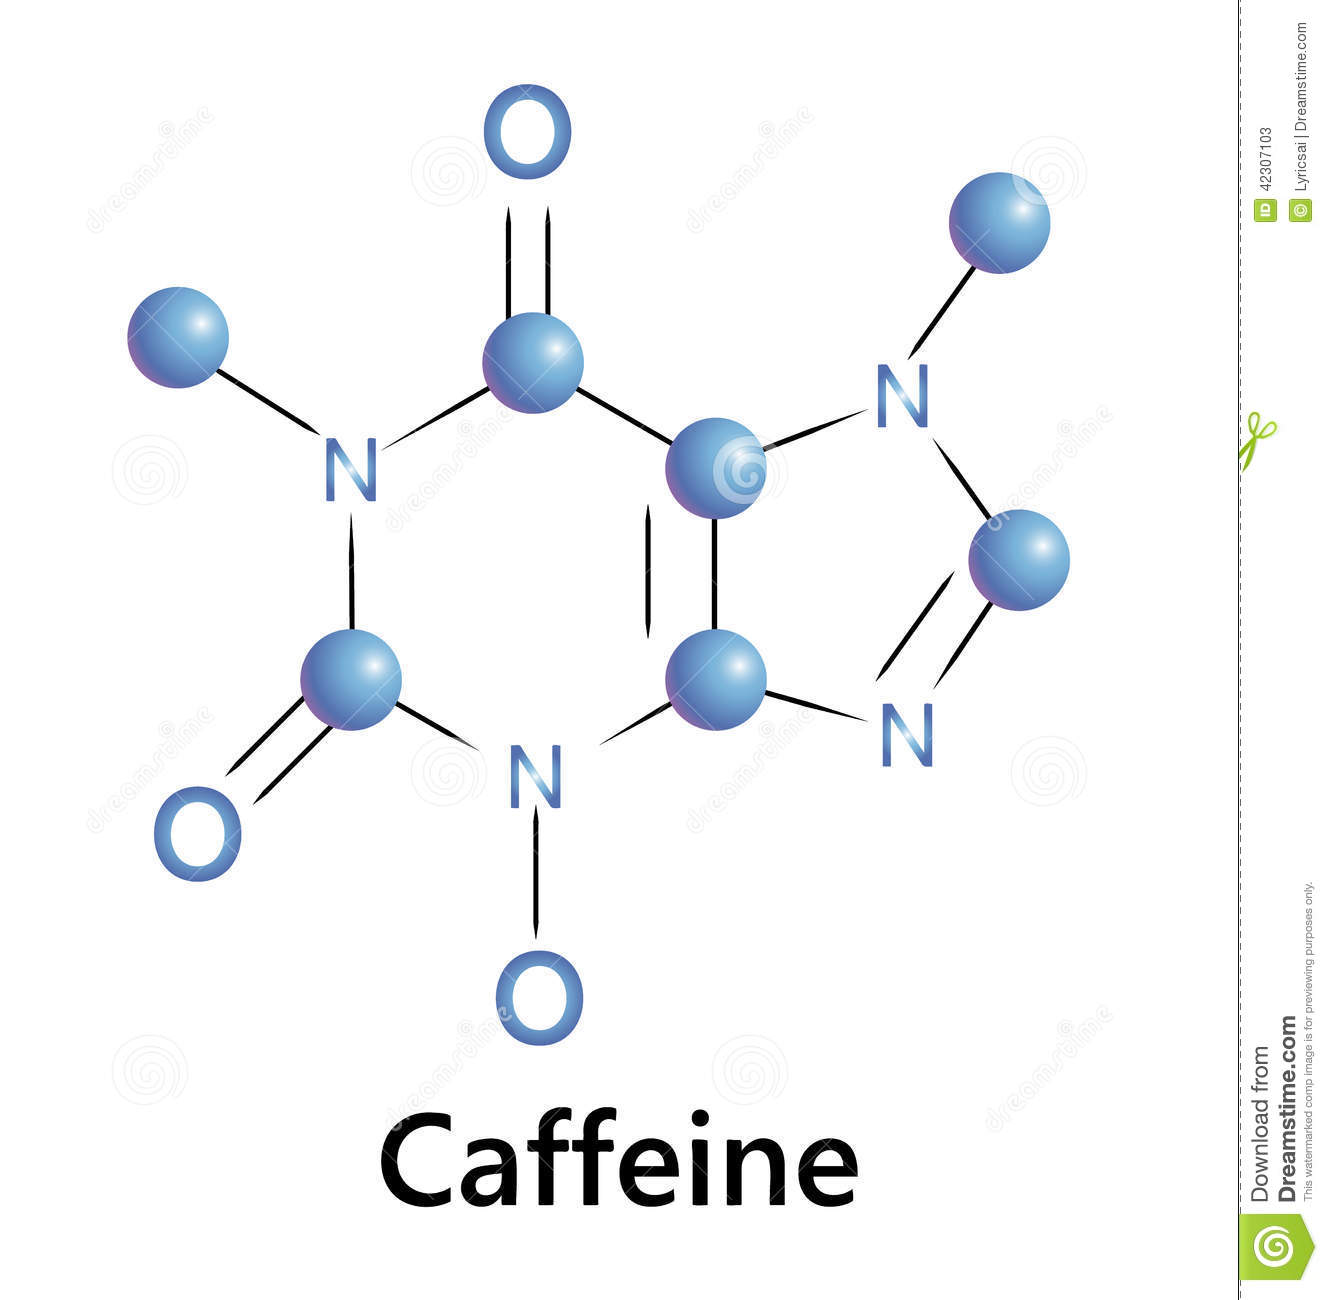 caffeine-chemical-molecule-structure-ect